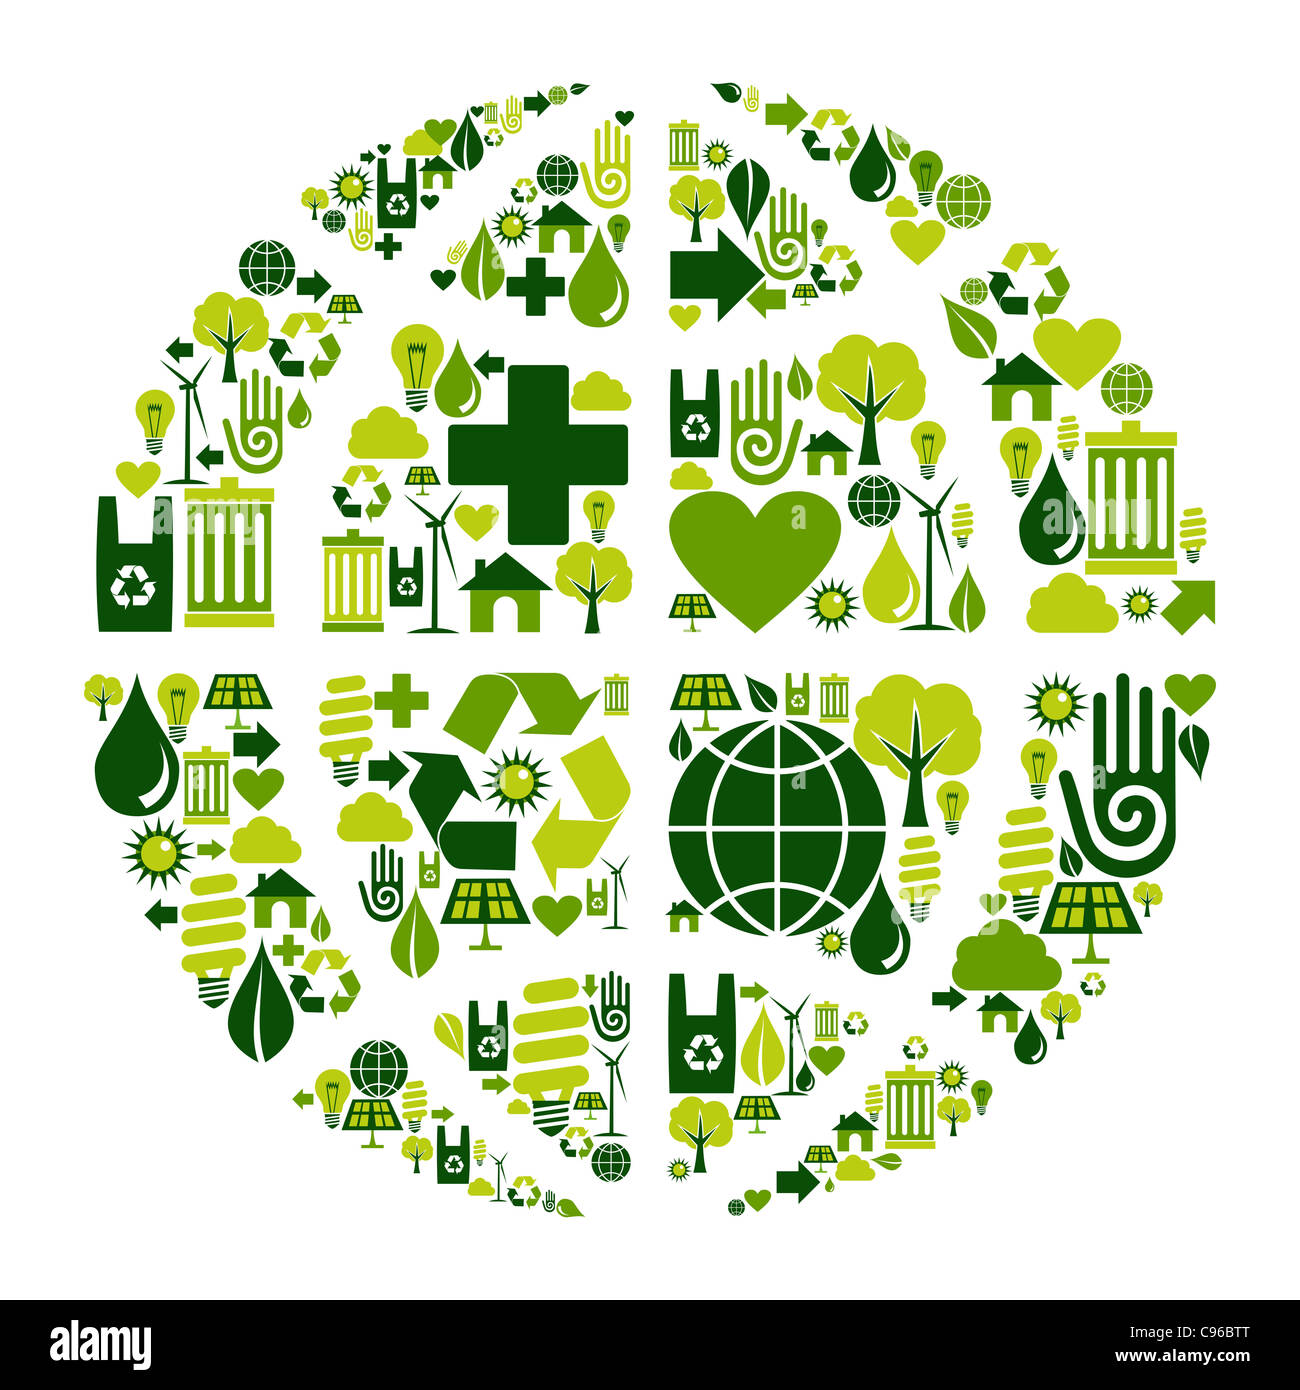 World symbol social media with environmental icons. - Stock Image